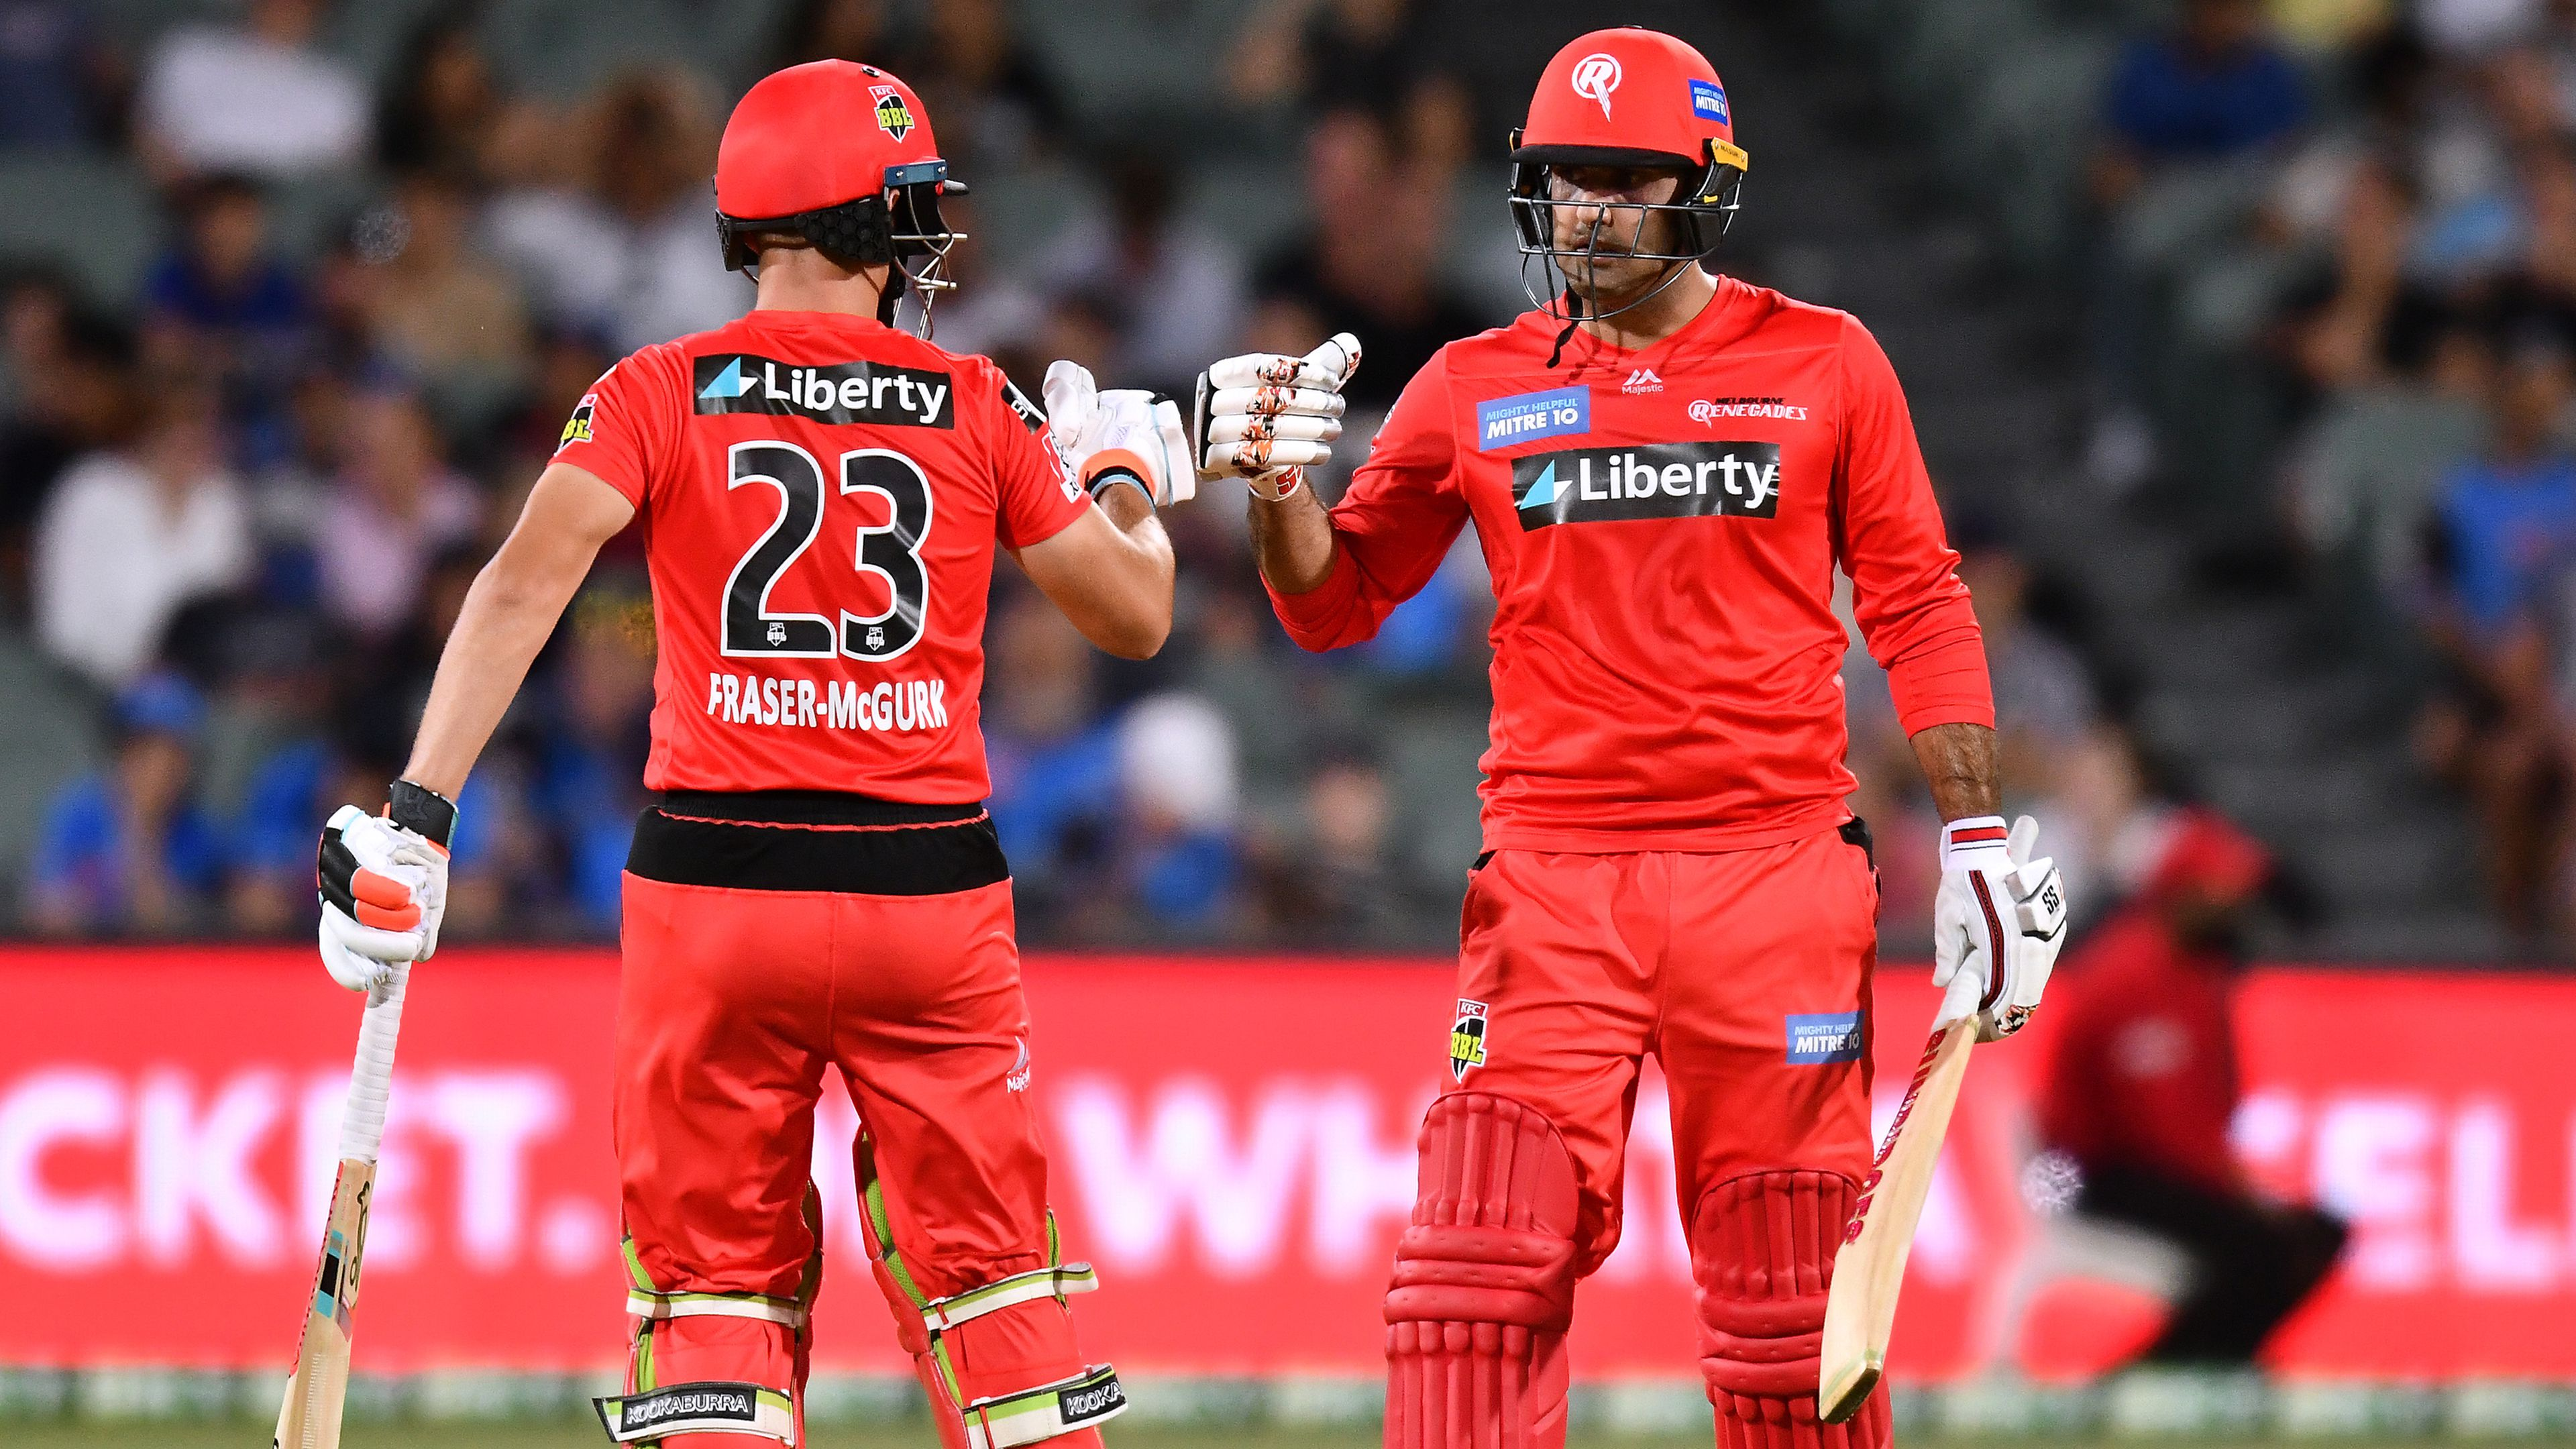 Unlikely duo guide Melbourne Renegades to win over Adelaide Strikers, snapping a seven game losing streak